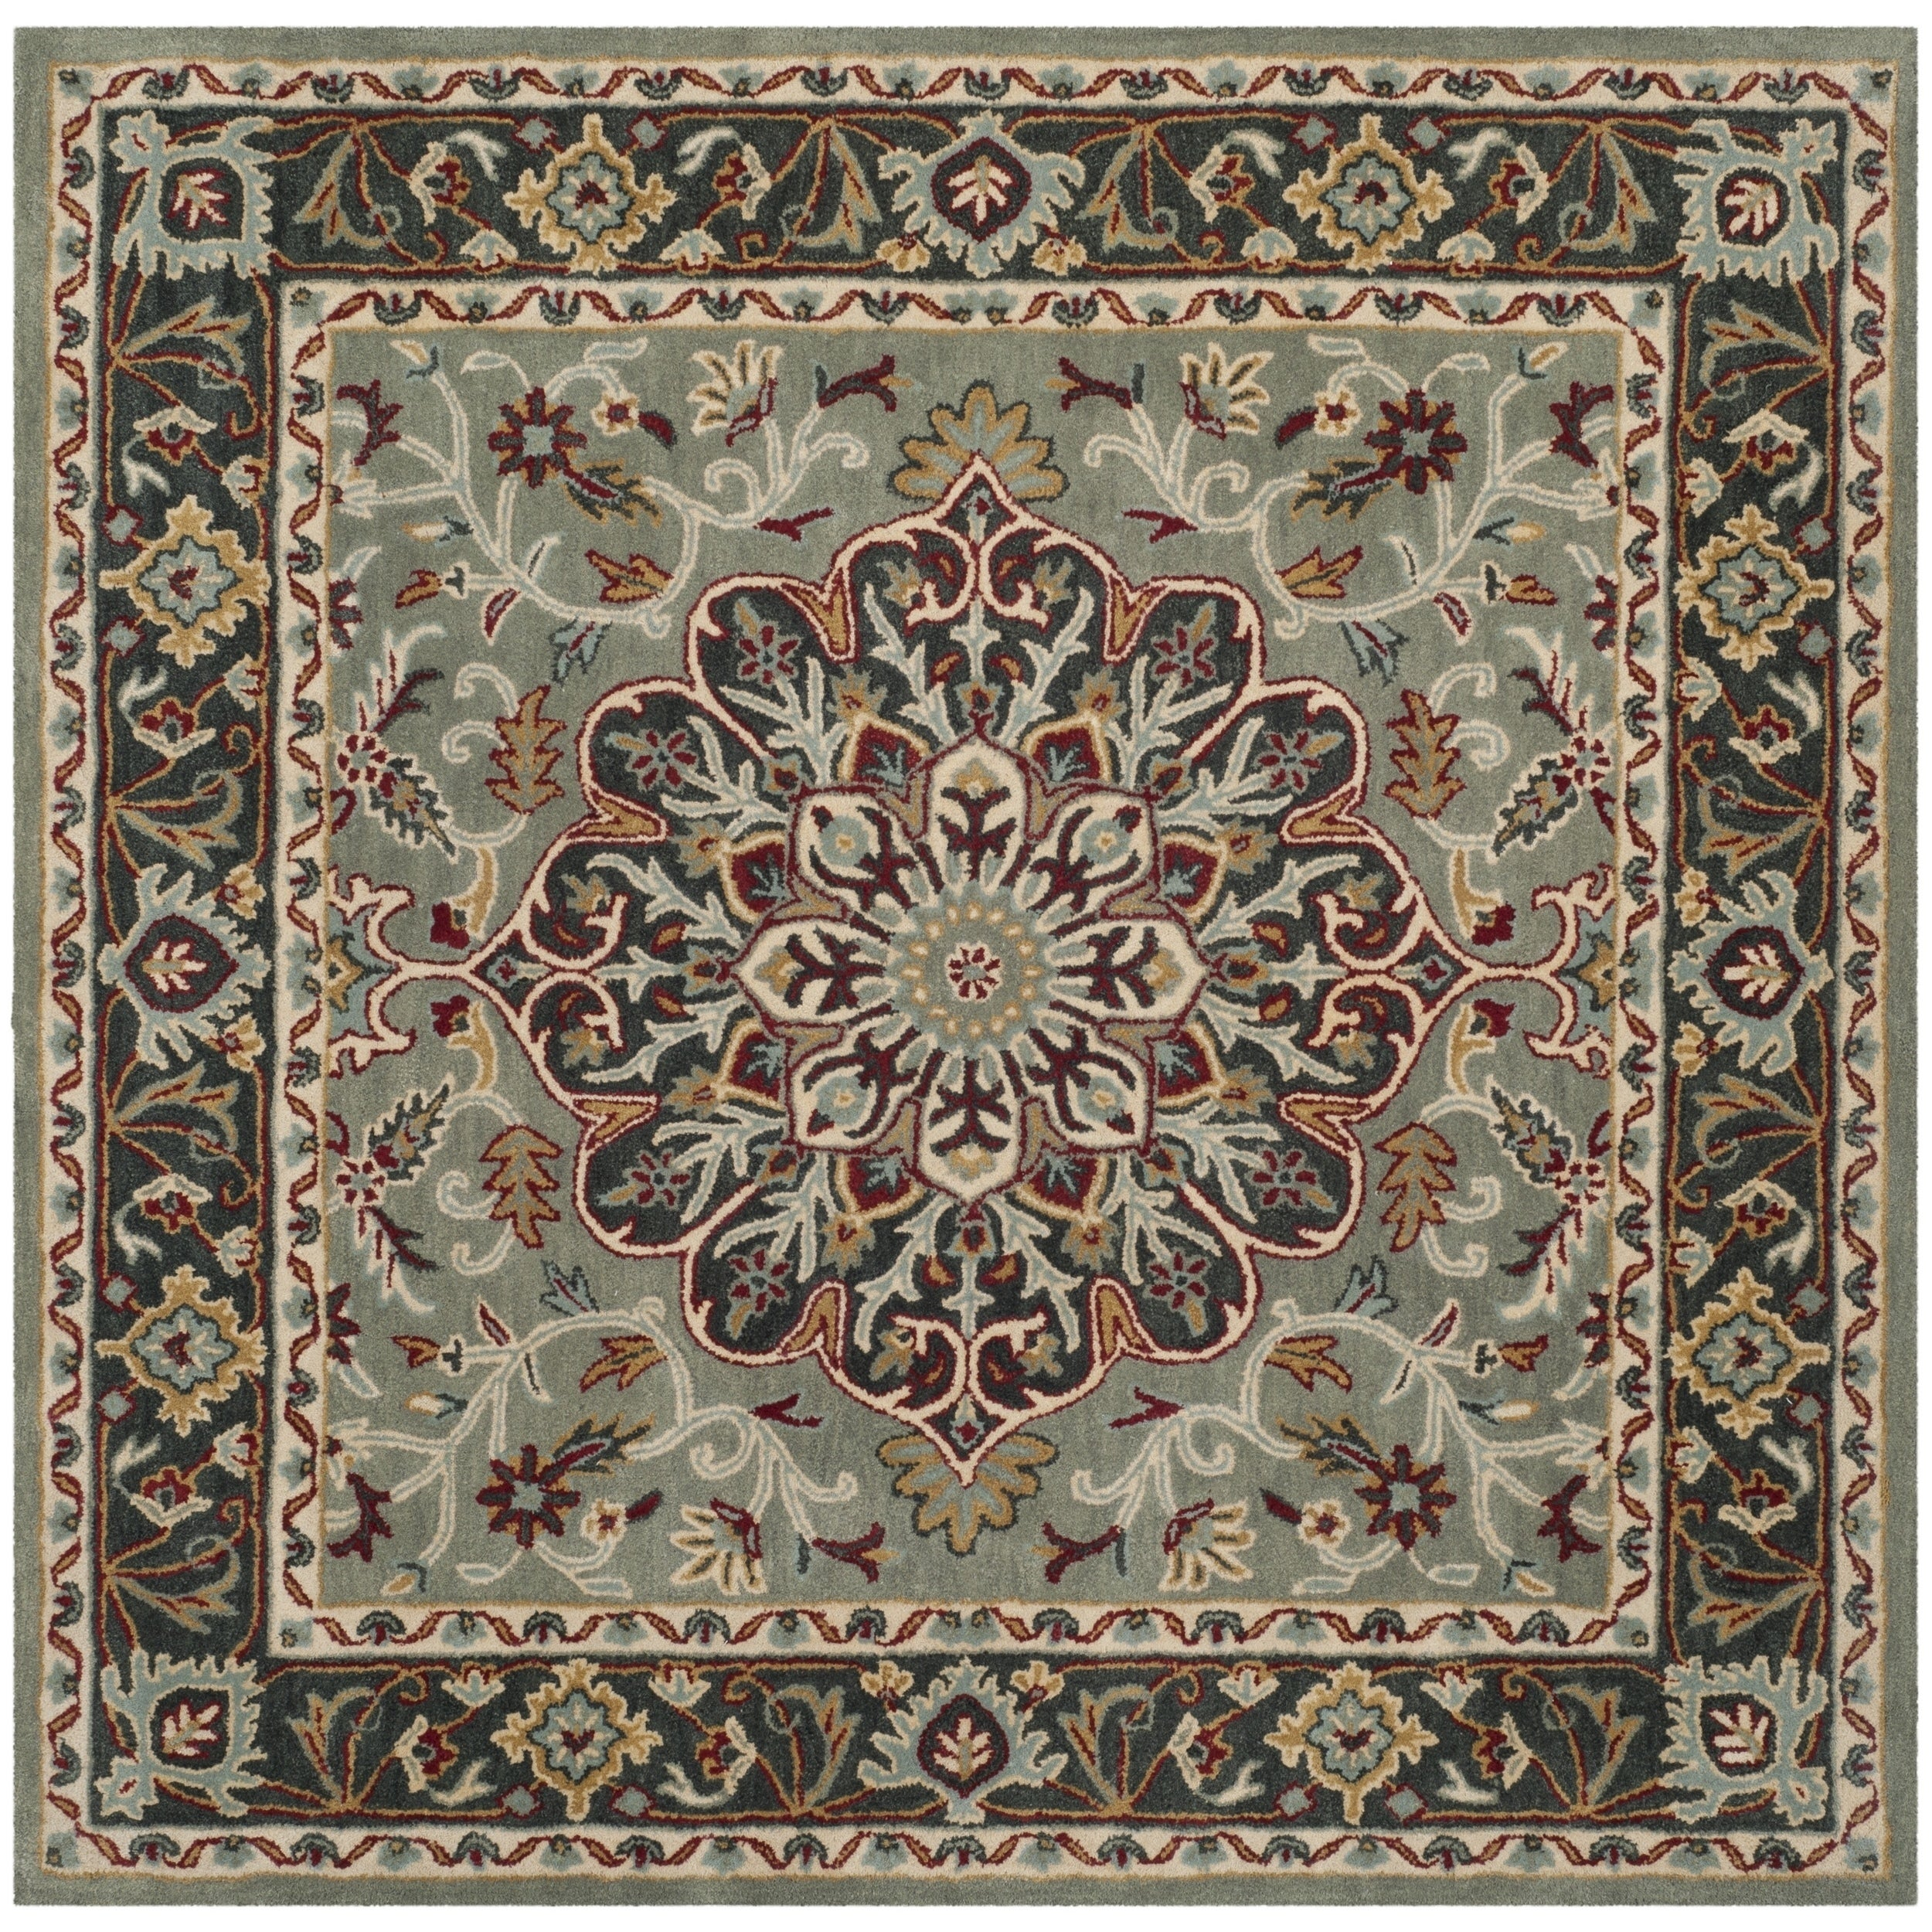 Safavieh Heritage Hand Woven Wool Grey Charcoal Area Rug